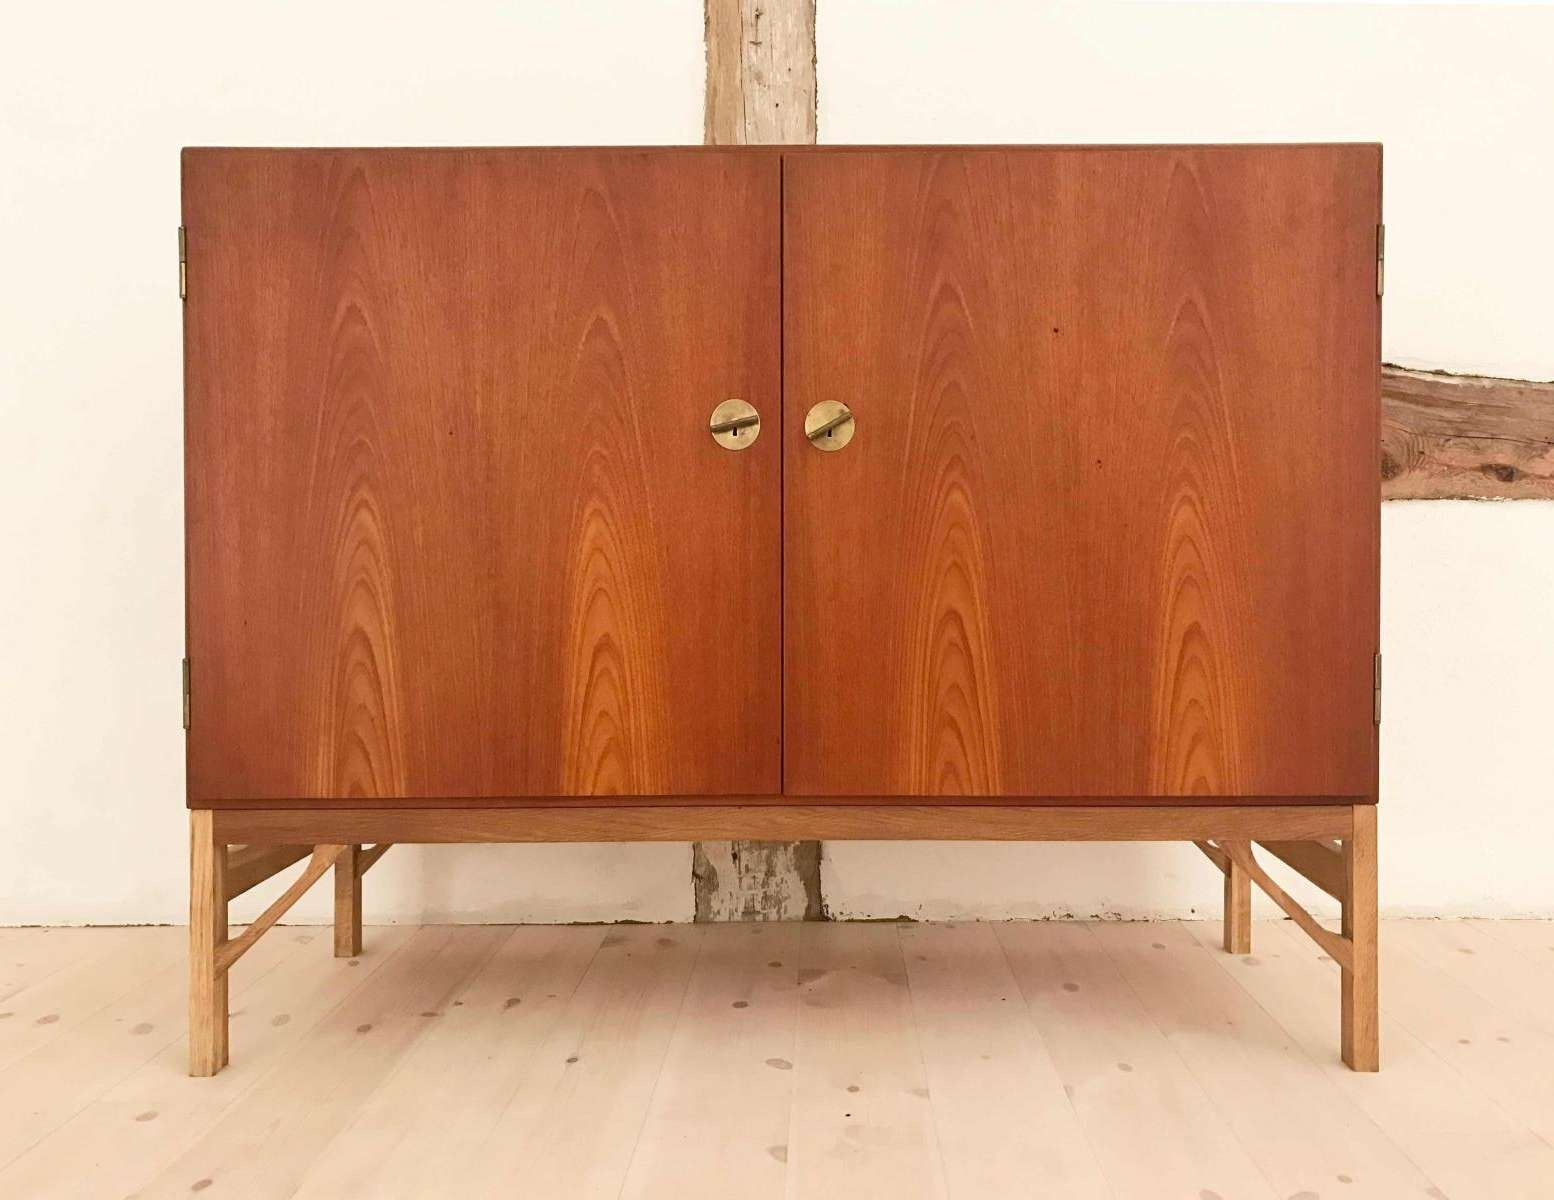 Vintage Danish Teak Sideboard With 2 Doorsbørge Mogensen For Throughout Danish Retro Sideboards (View 18 of 20)